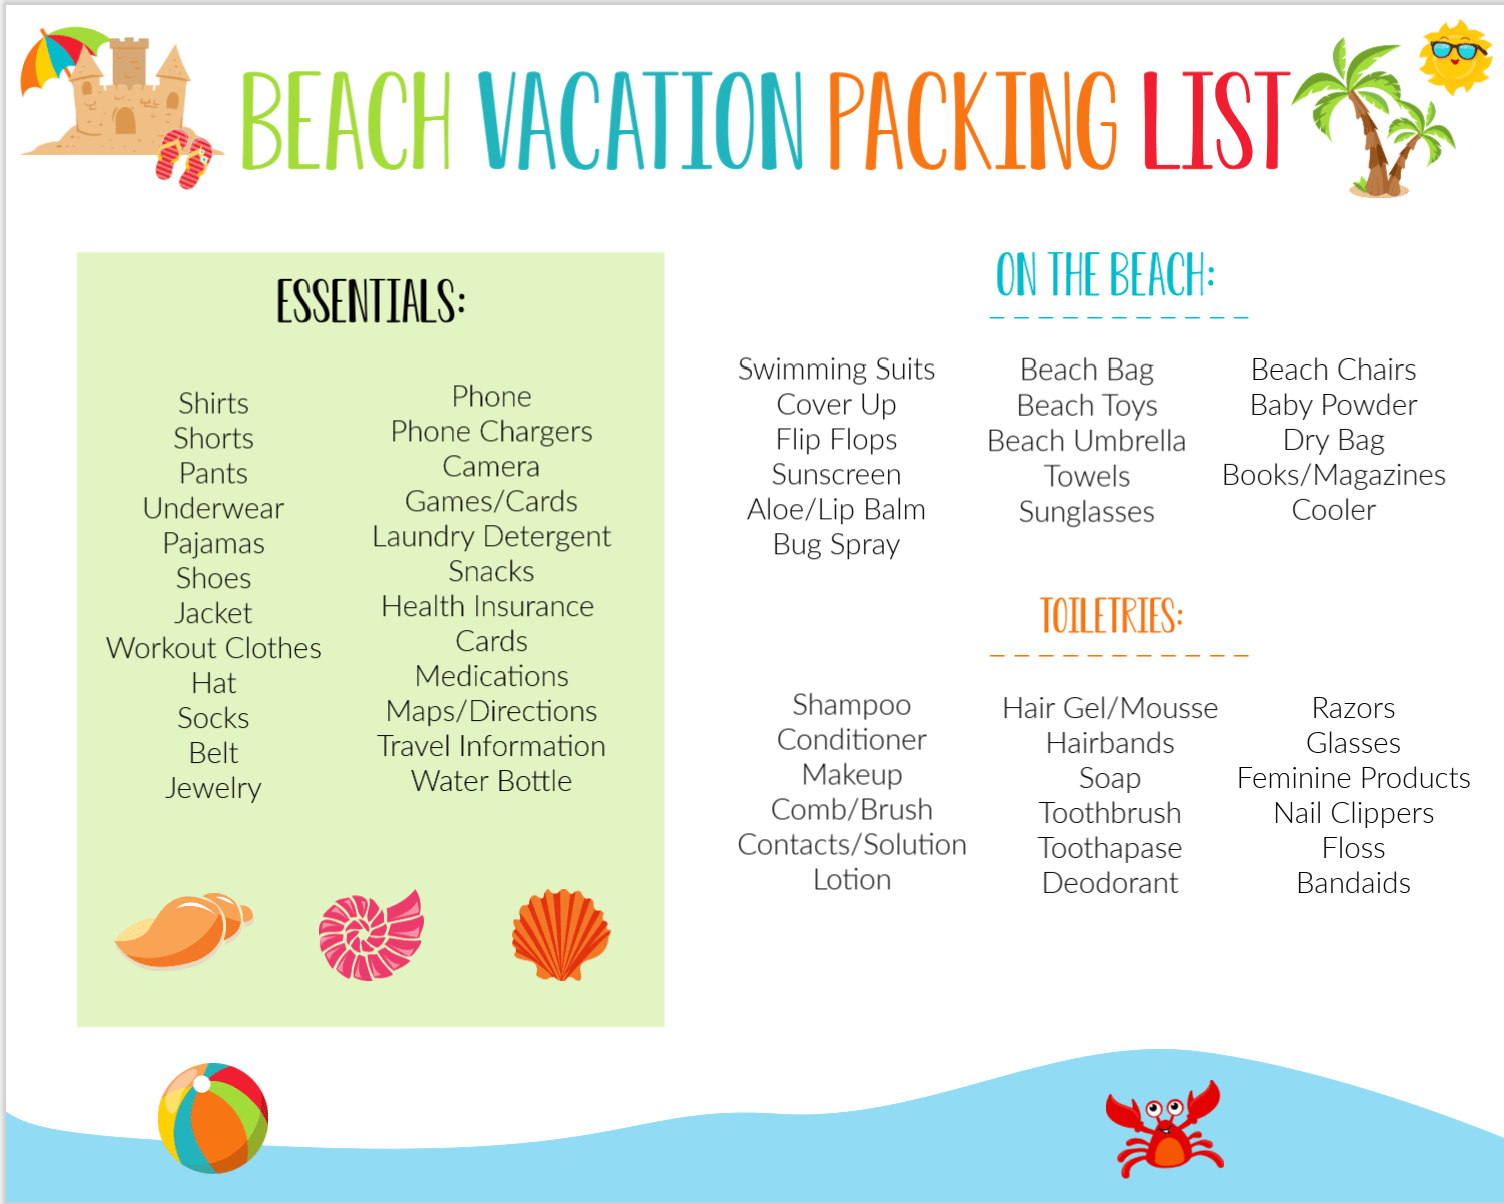 Printable Beach Vacation Packing List for Famliies